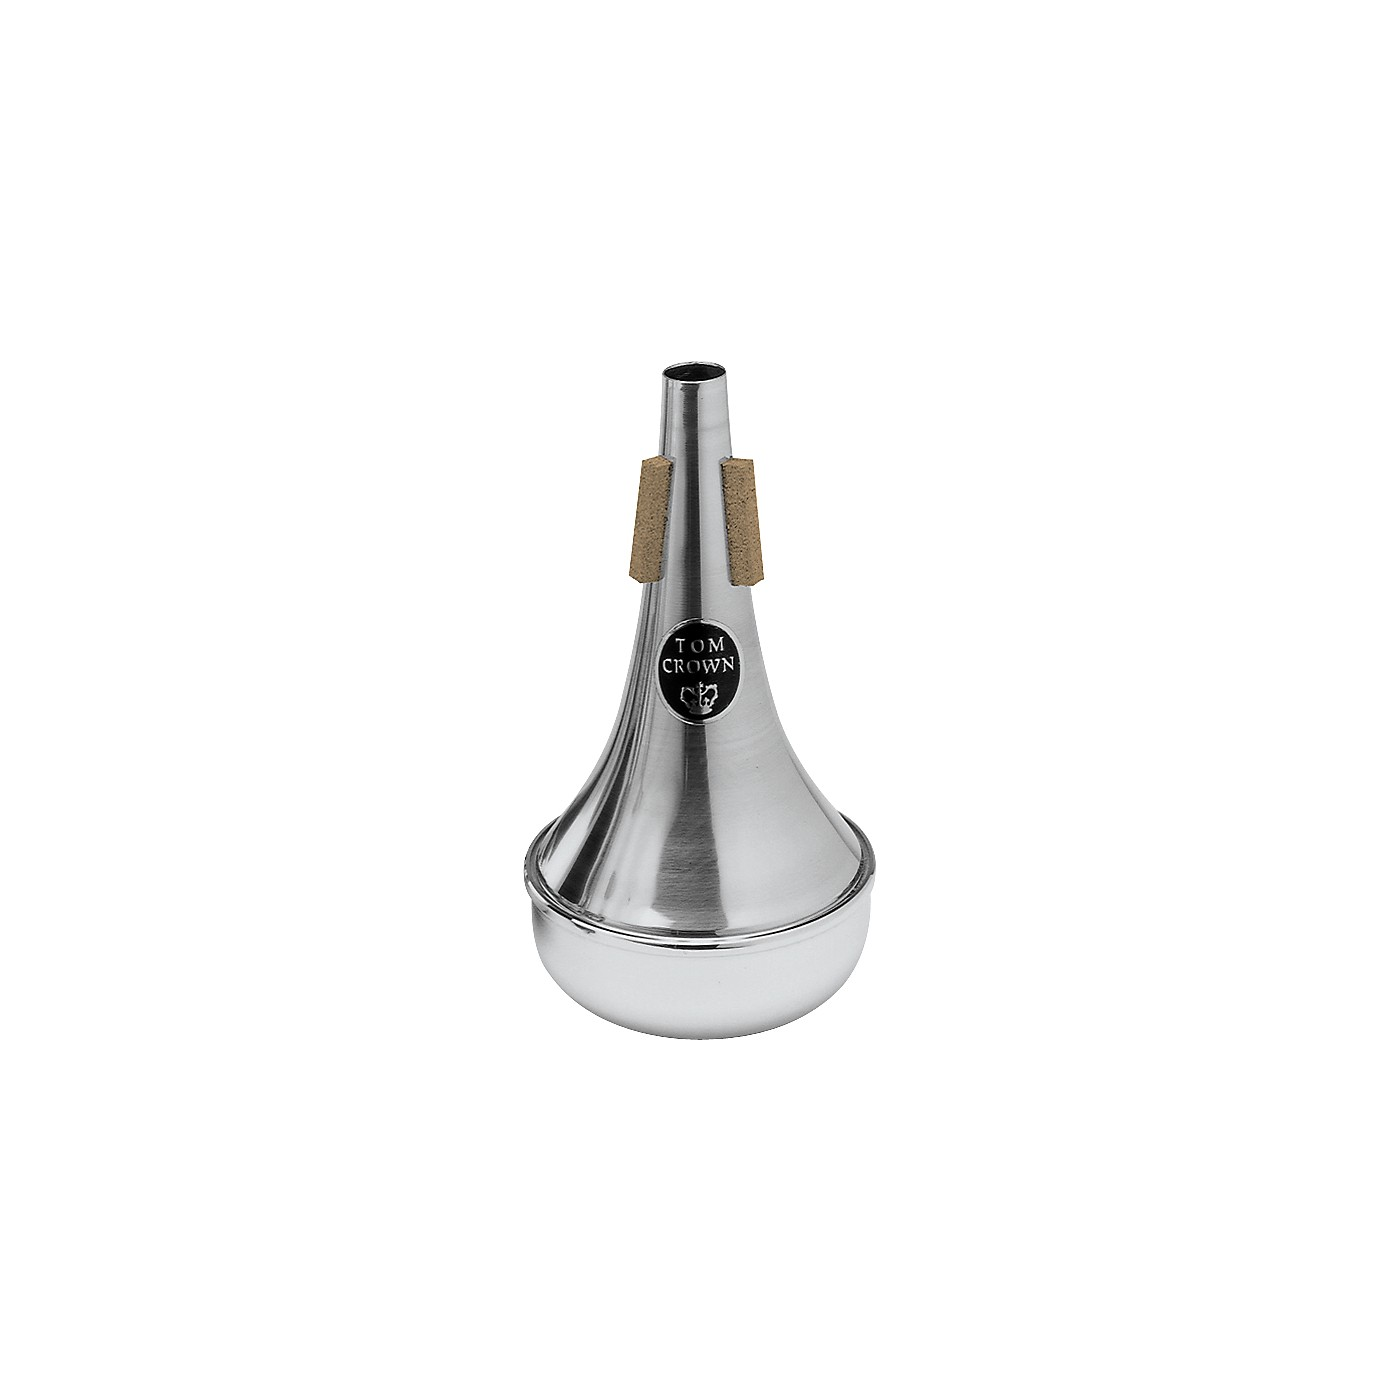 Tom Crown TC7 Trombone Straight Mute thumbnail